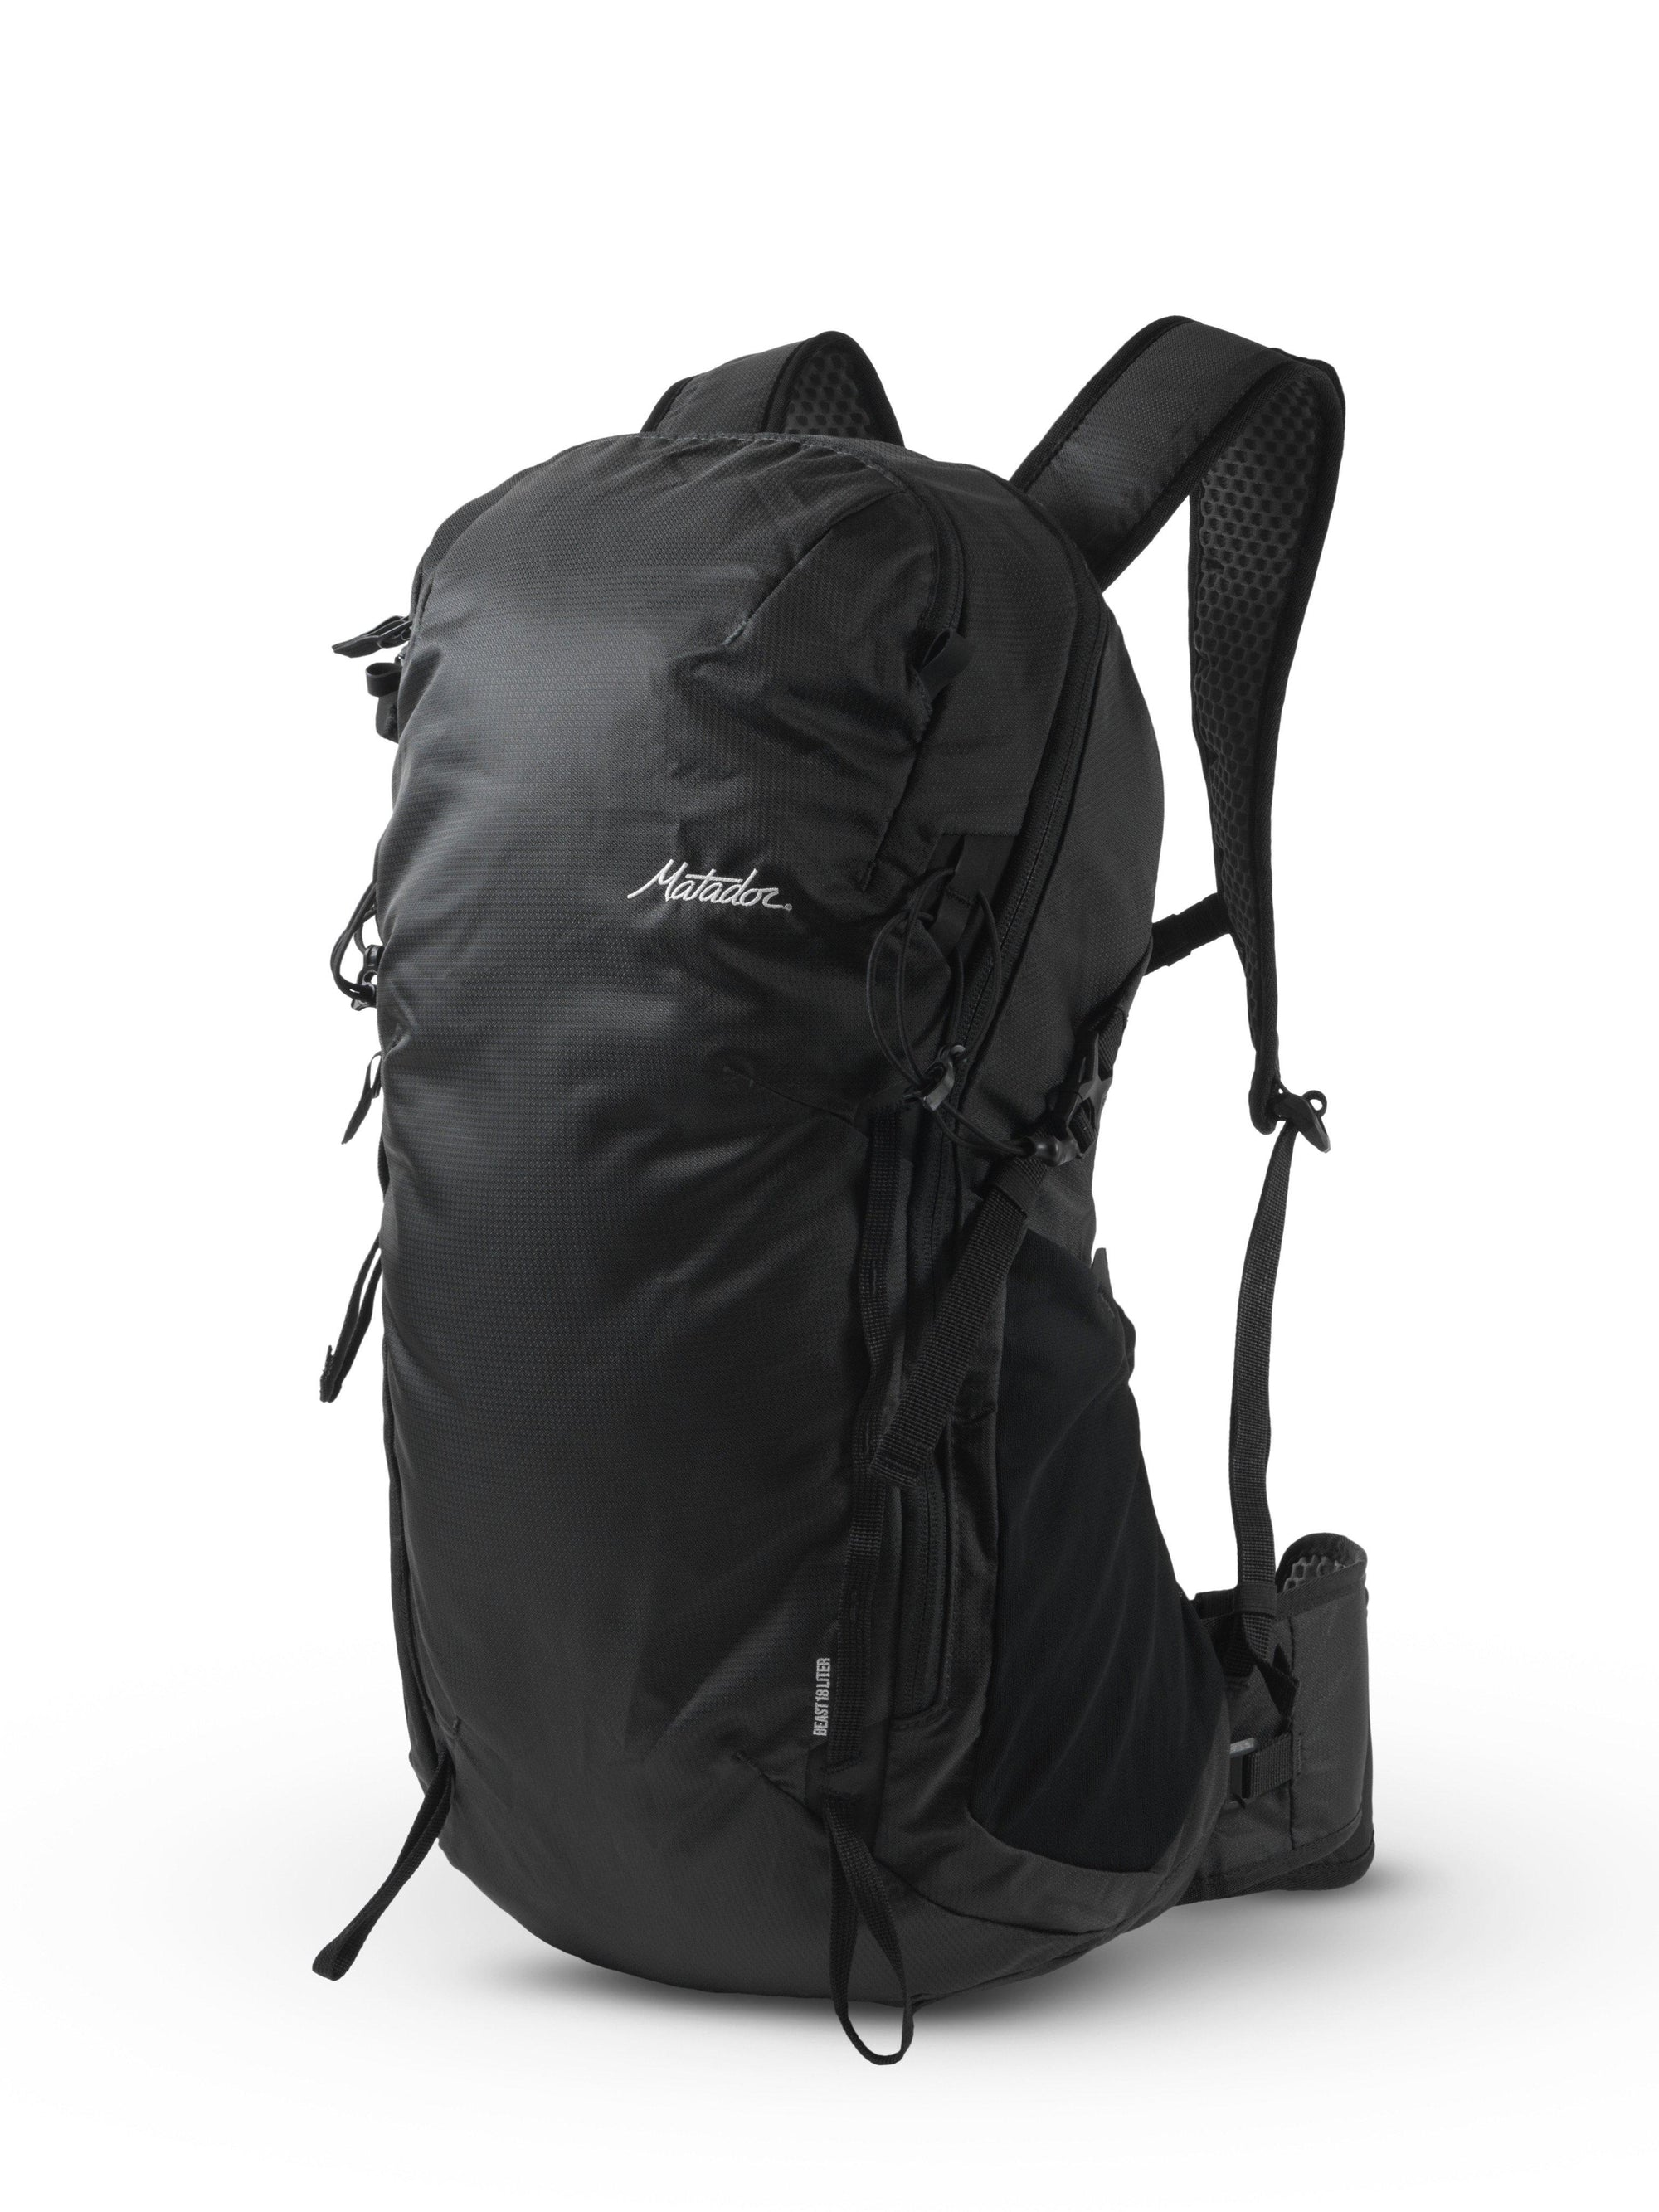 Matador Beast18 Ultralight Technical Backpack